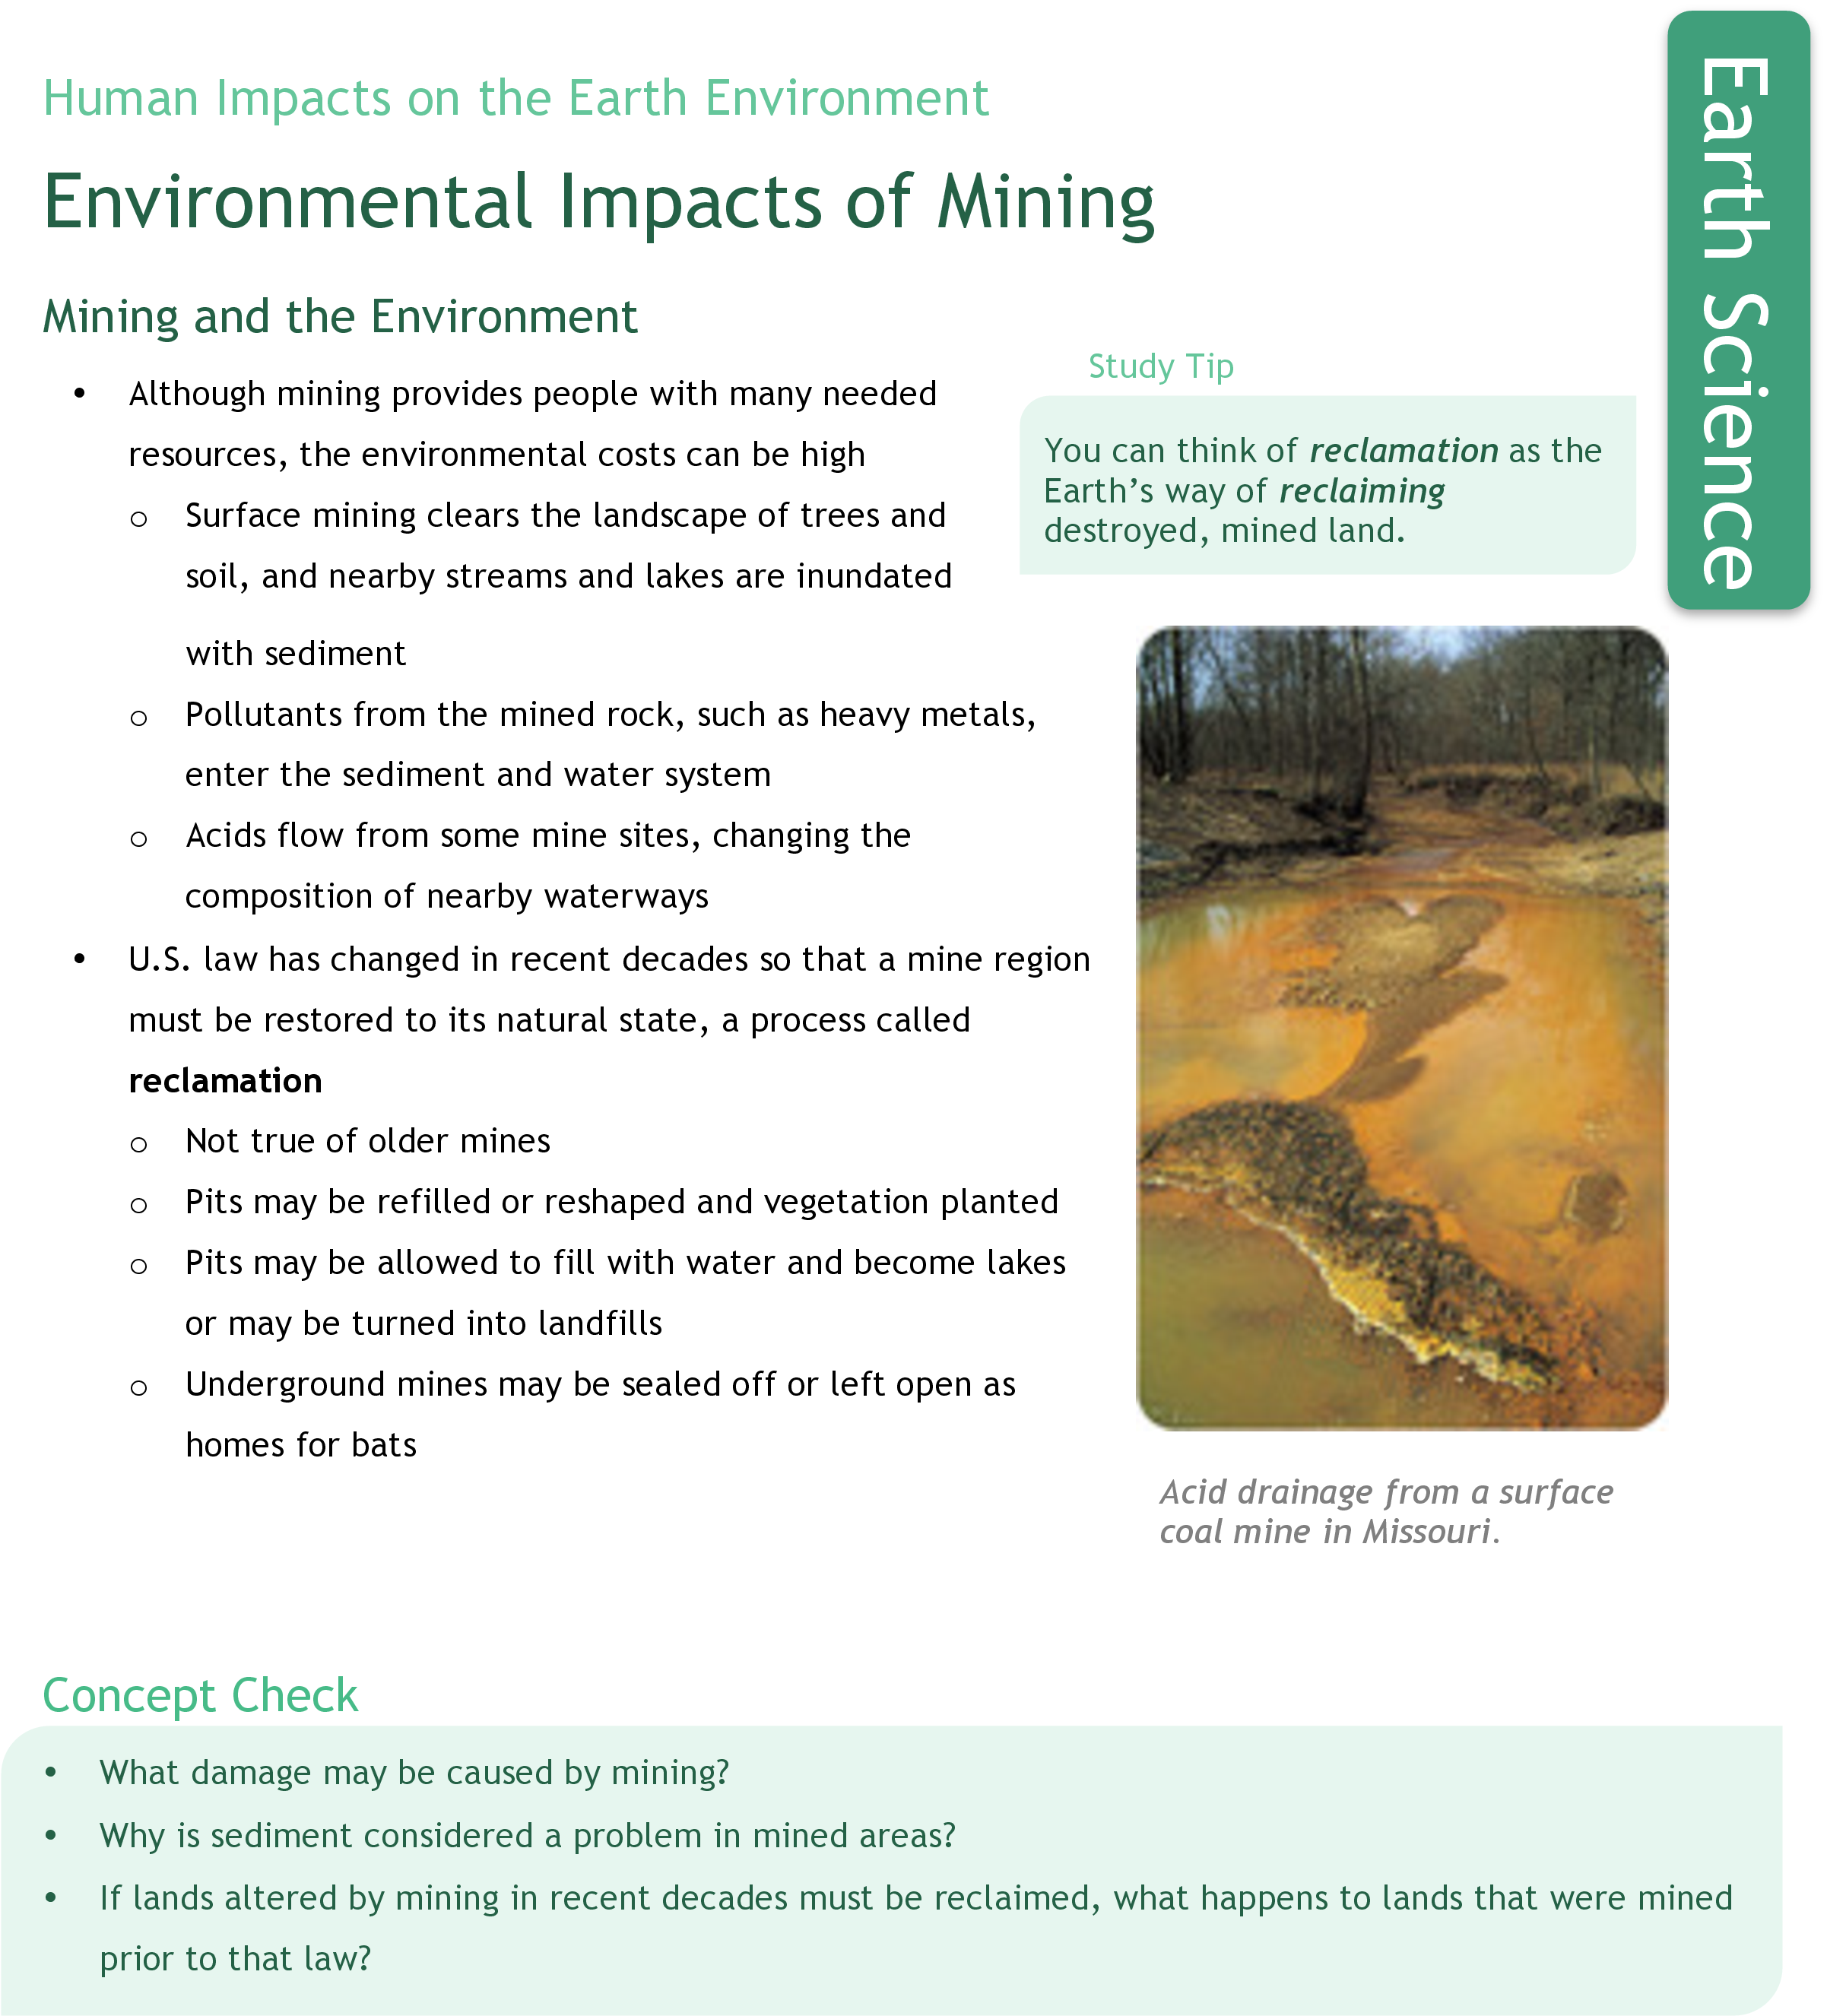 Environmental Impacts of Mining | CK-12 Foundation